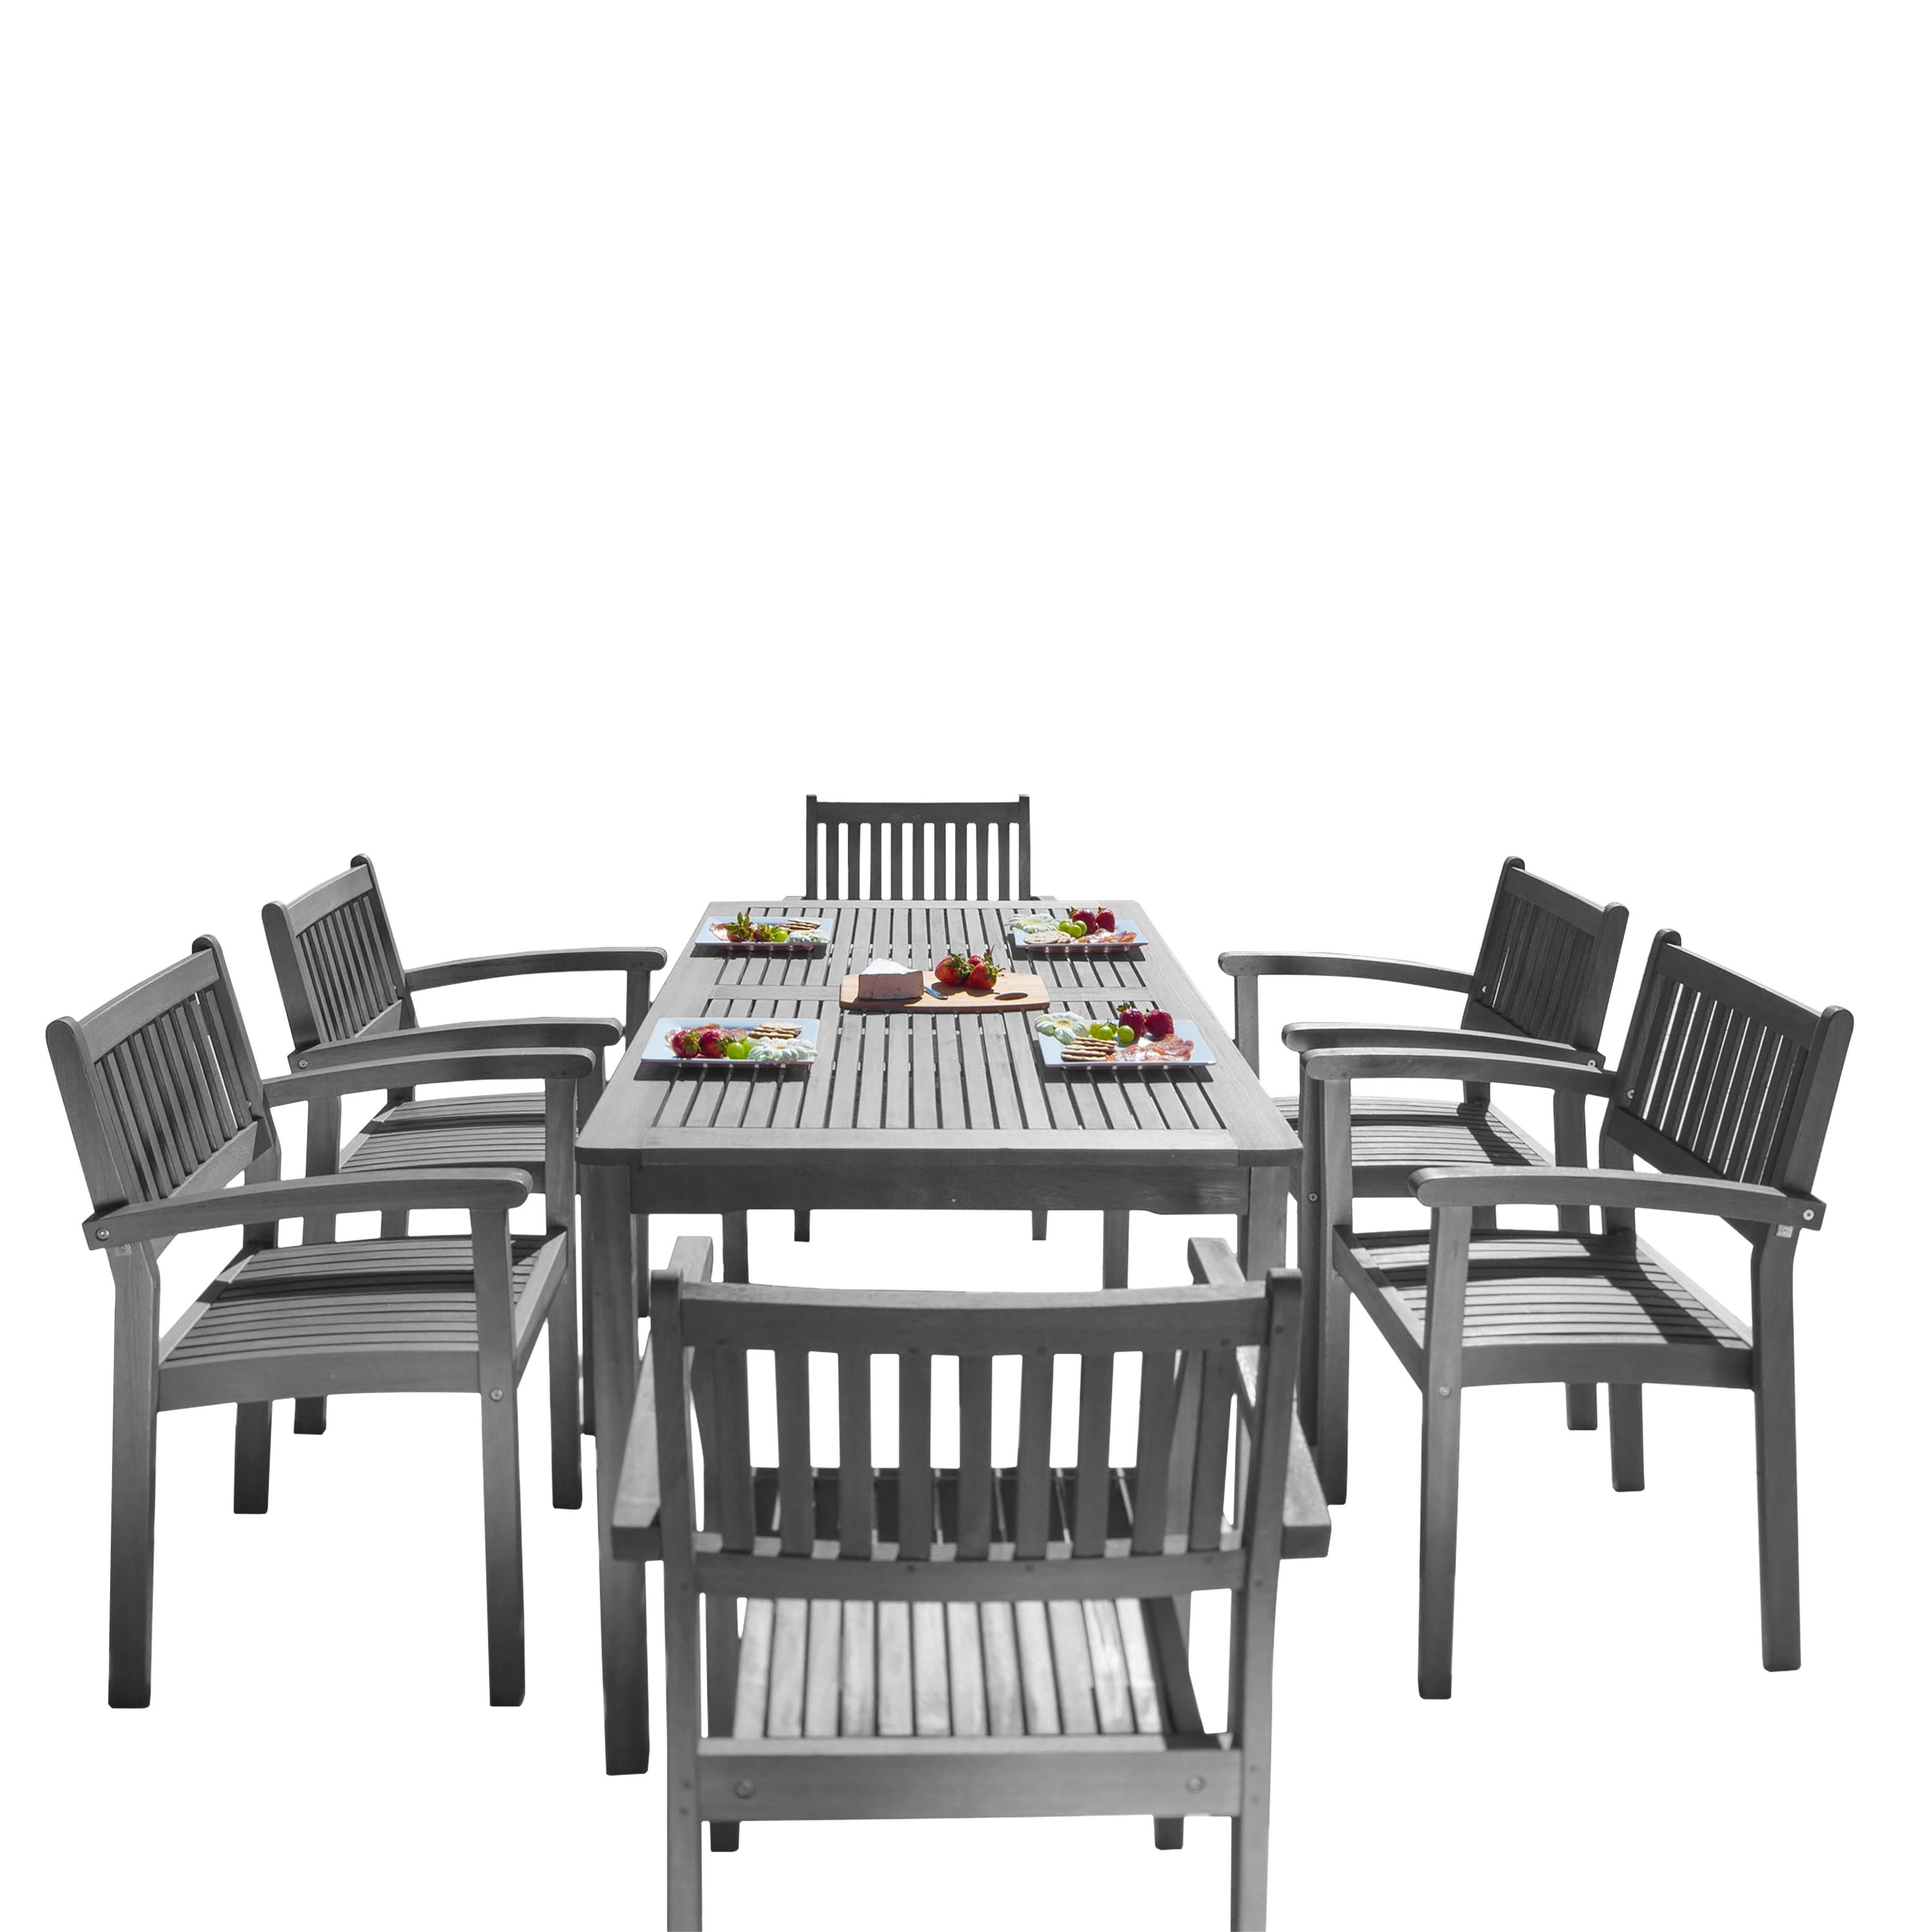 Shop The Gray Barn Bluebird 7 Piece Eucalyptus Wood Stacked Chair Outdoor  Dining Set   Free Shipping Today   Overstock.com   22801973